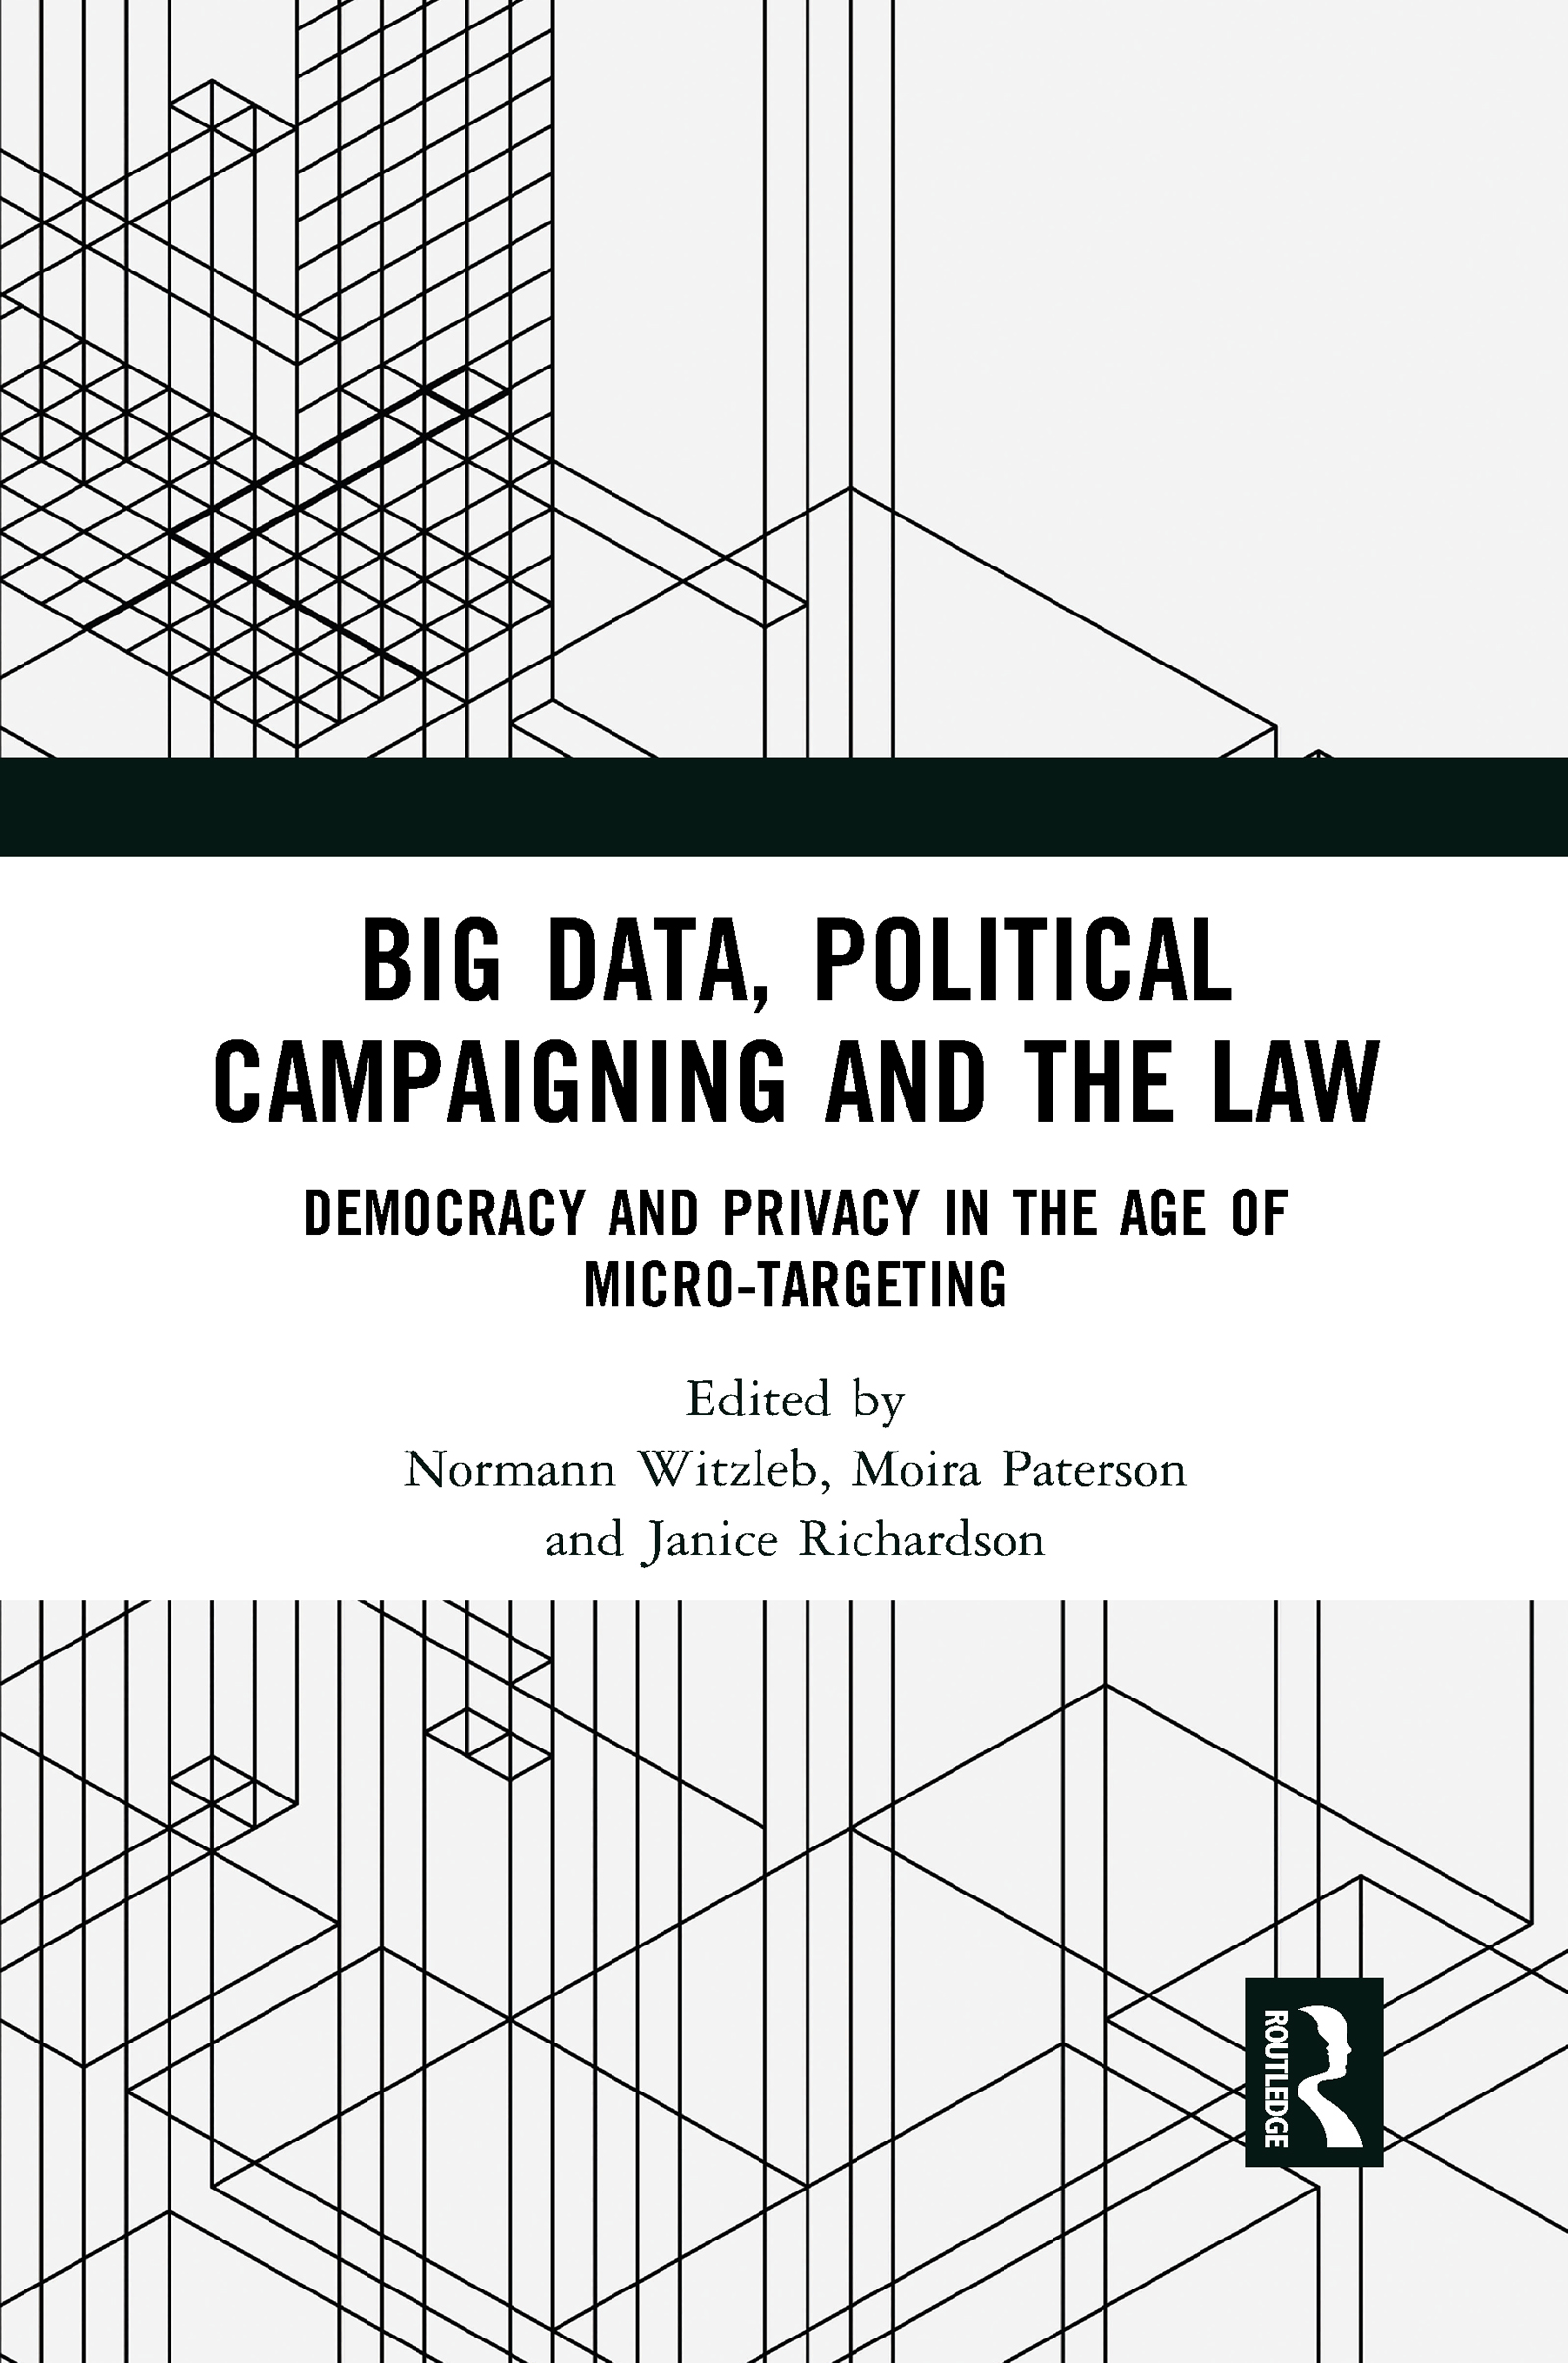 Big Data, Political Campaigning and the Law